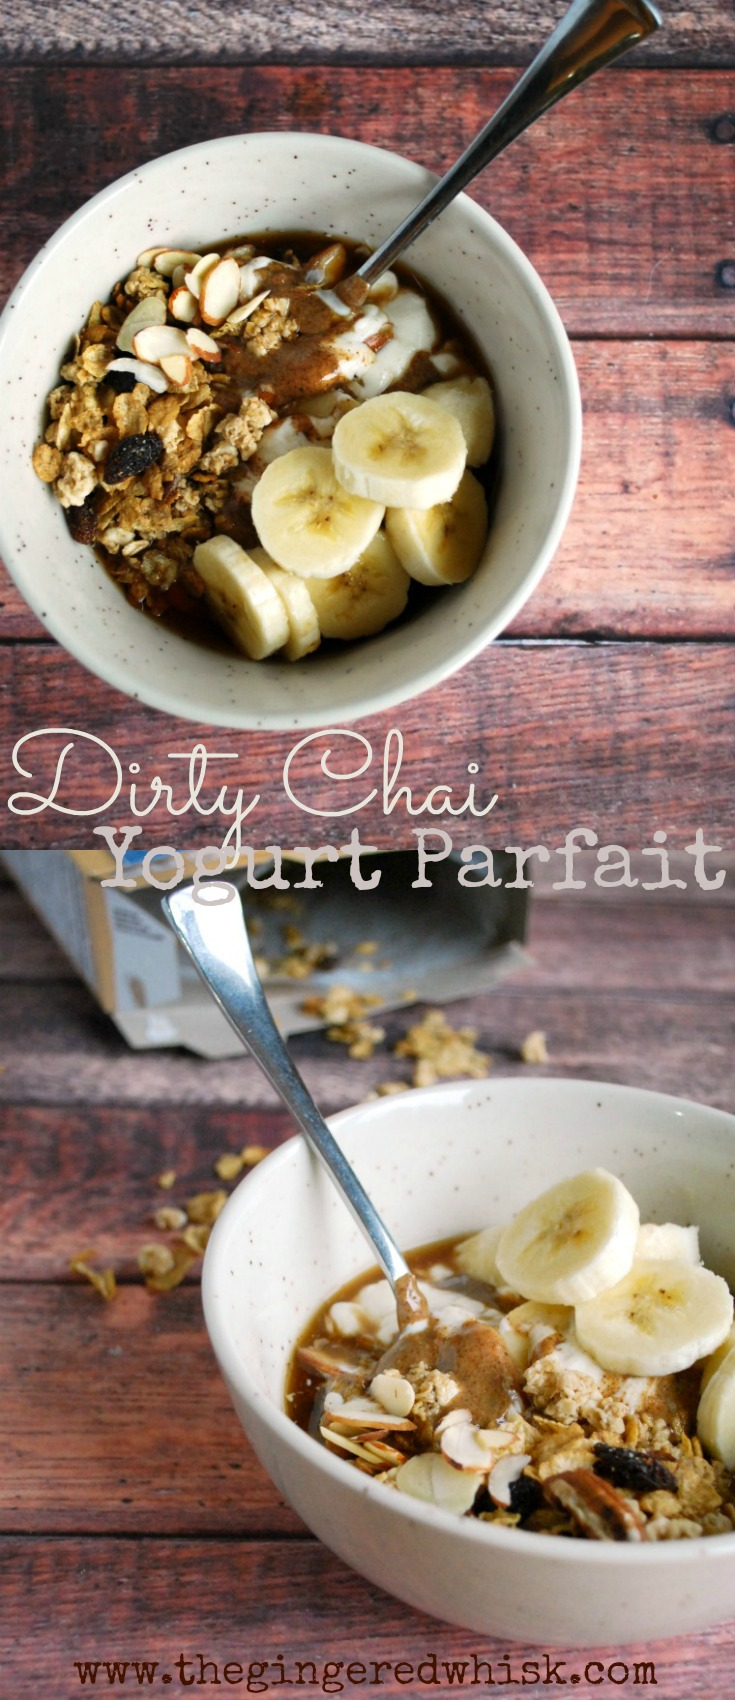 This Dirty Chai Greek Yogurt Parfait is a perfect breakfast to start your day off right - plus it takes literal minutes to make!